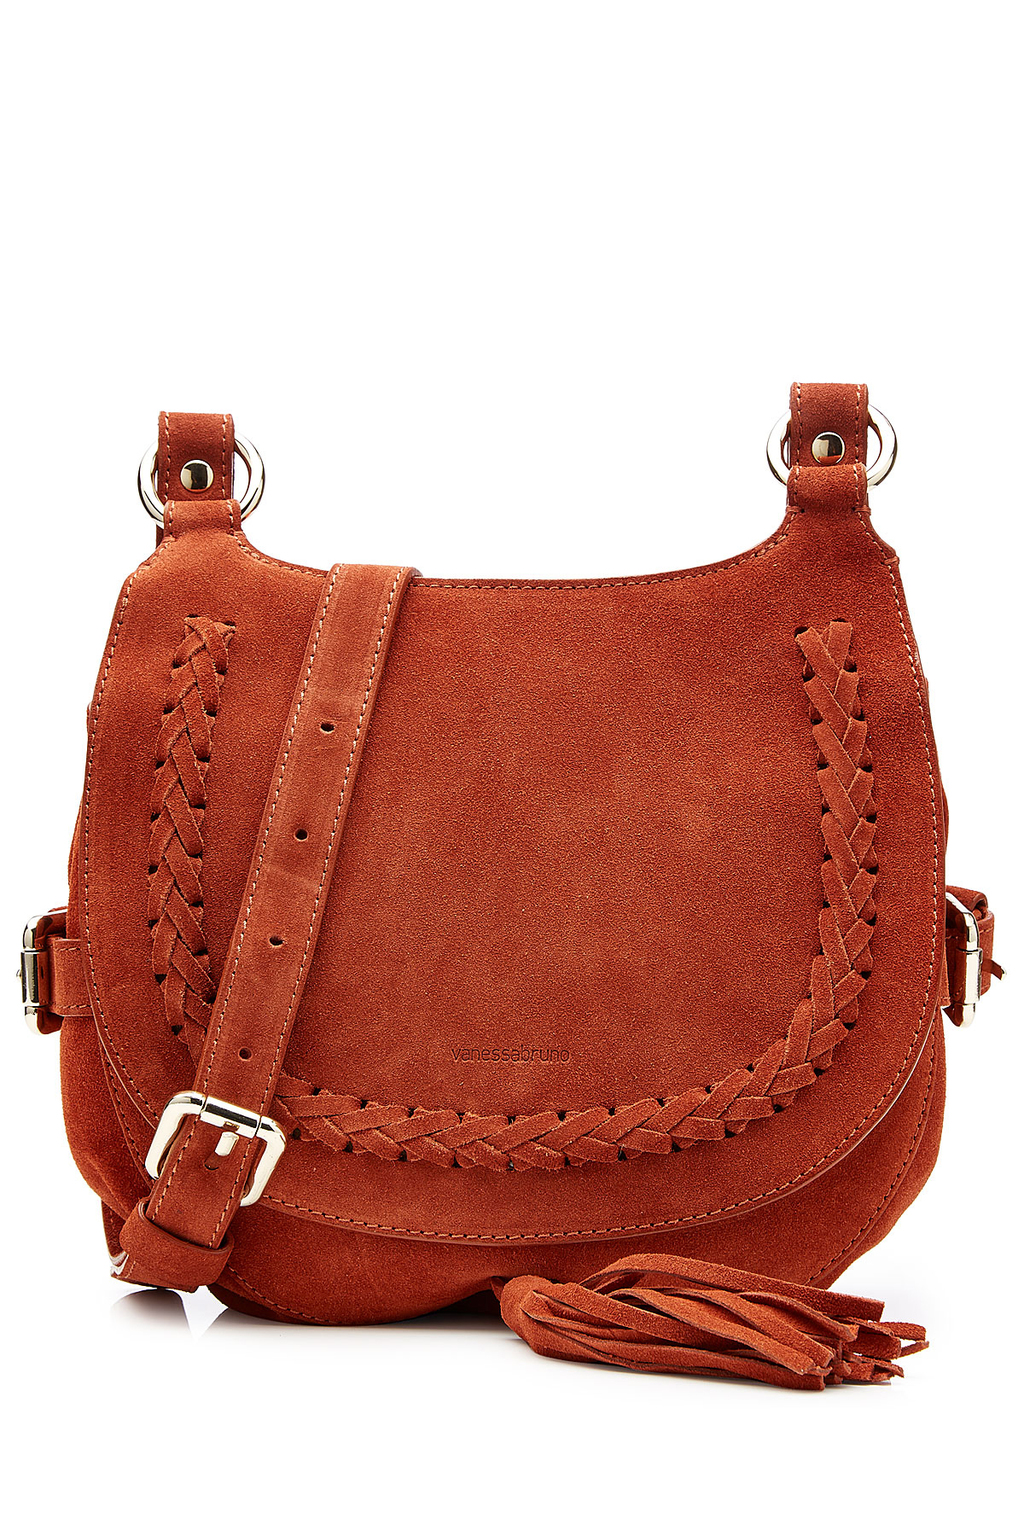 Suede Shoulder Bag Red - predominant colour: terracotta; occasions: casual, creative work; type of pattern: standard; style: saddle; length: across body/long; size: standard; material: suede; embellishment: tassels; pattern: plain; finish: plain; season: a/w 2016; wardrobe: highlight